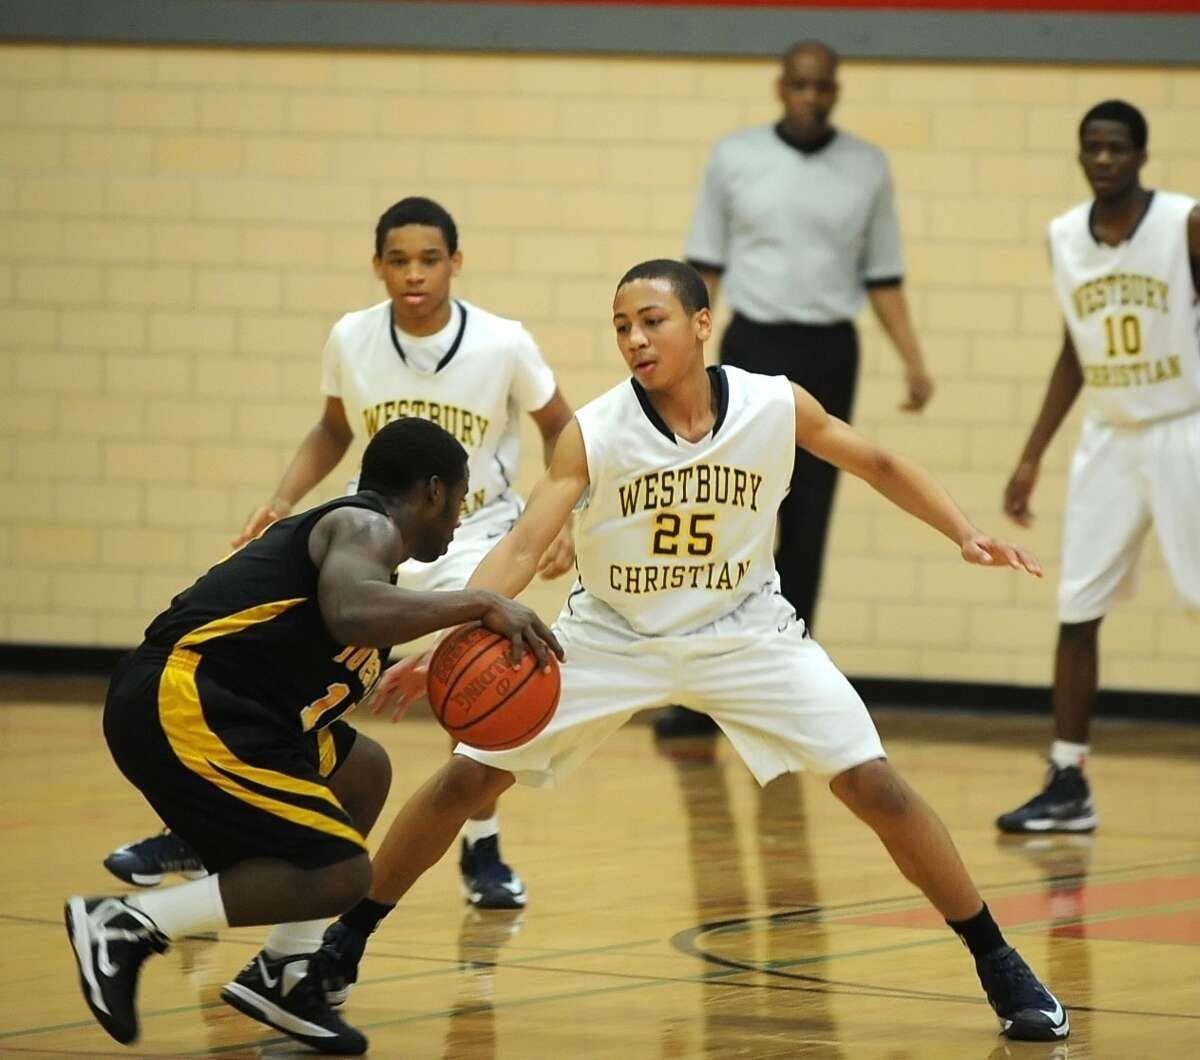 Westbury Christian's Galen Robinson (25) is one of the area's top point guards.